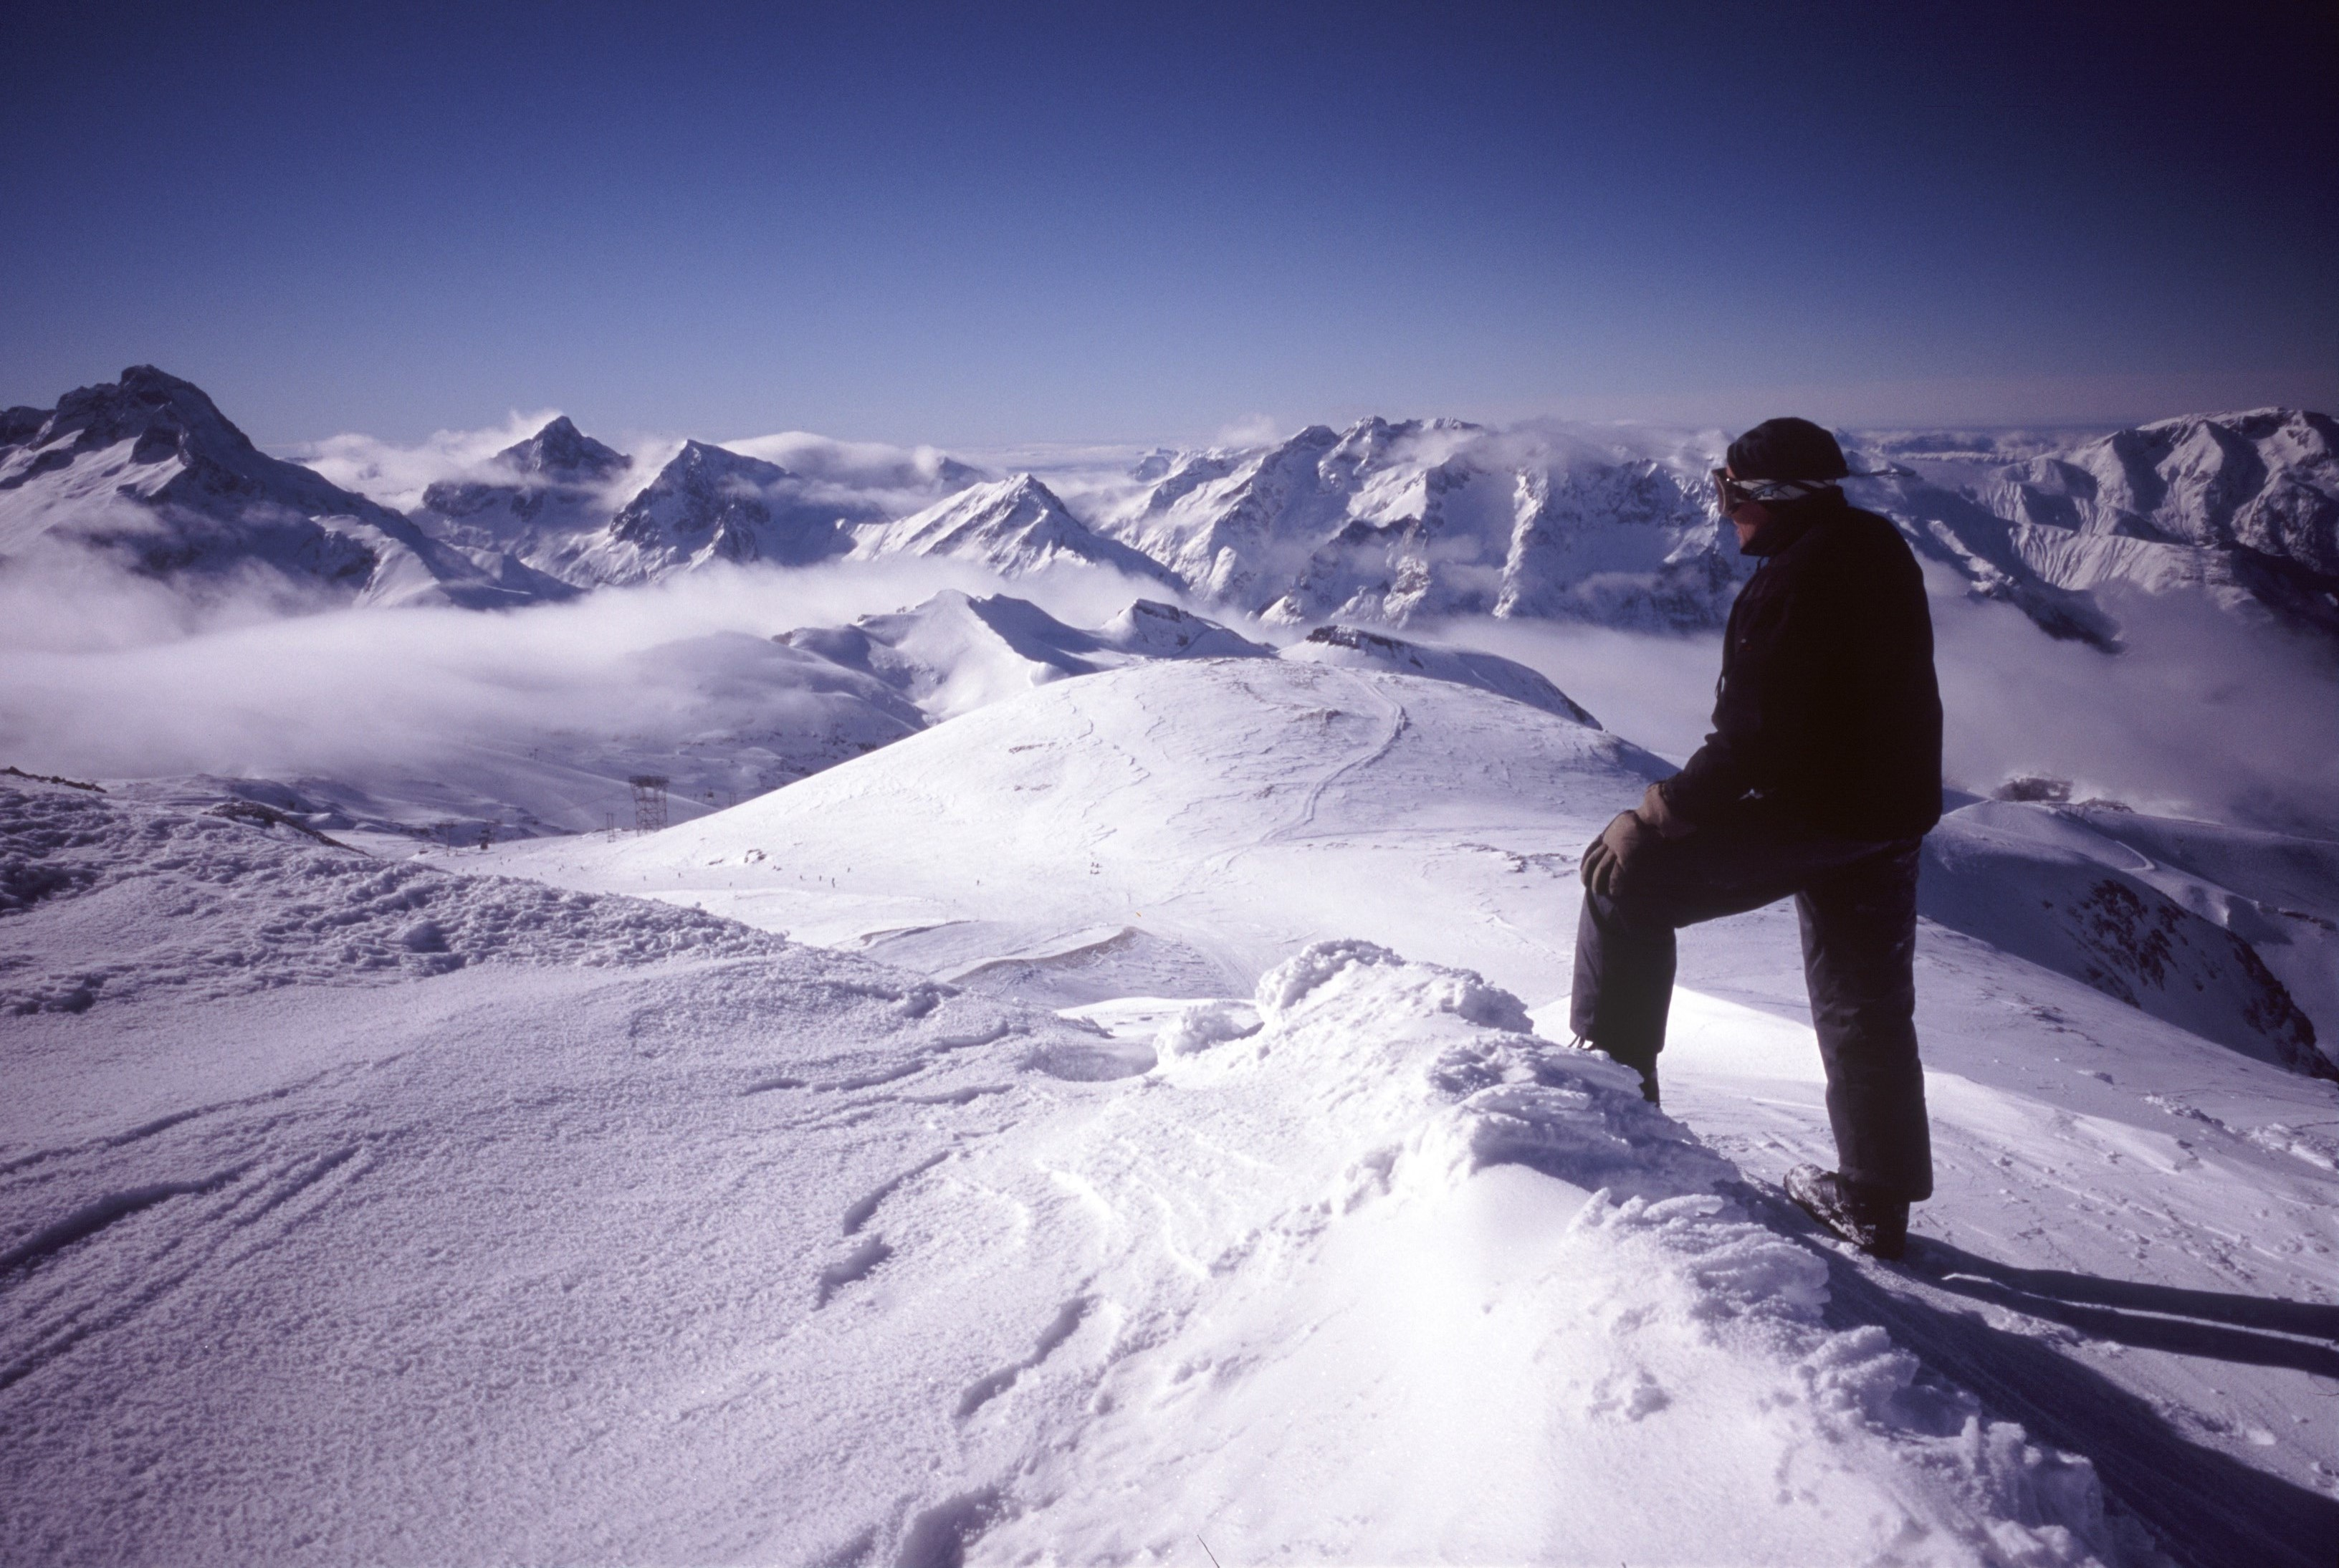 Man standing on heavy snow on a mountain peak looking out across a beautiful winter wonderland of snowcovered mountain ranges and peaks under a dense covering of fresh pristine white snow